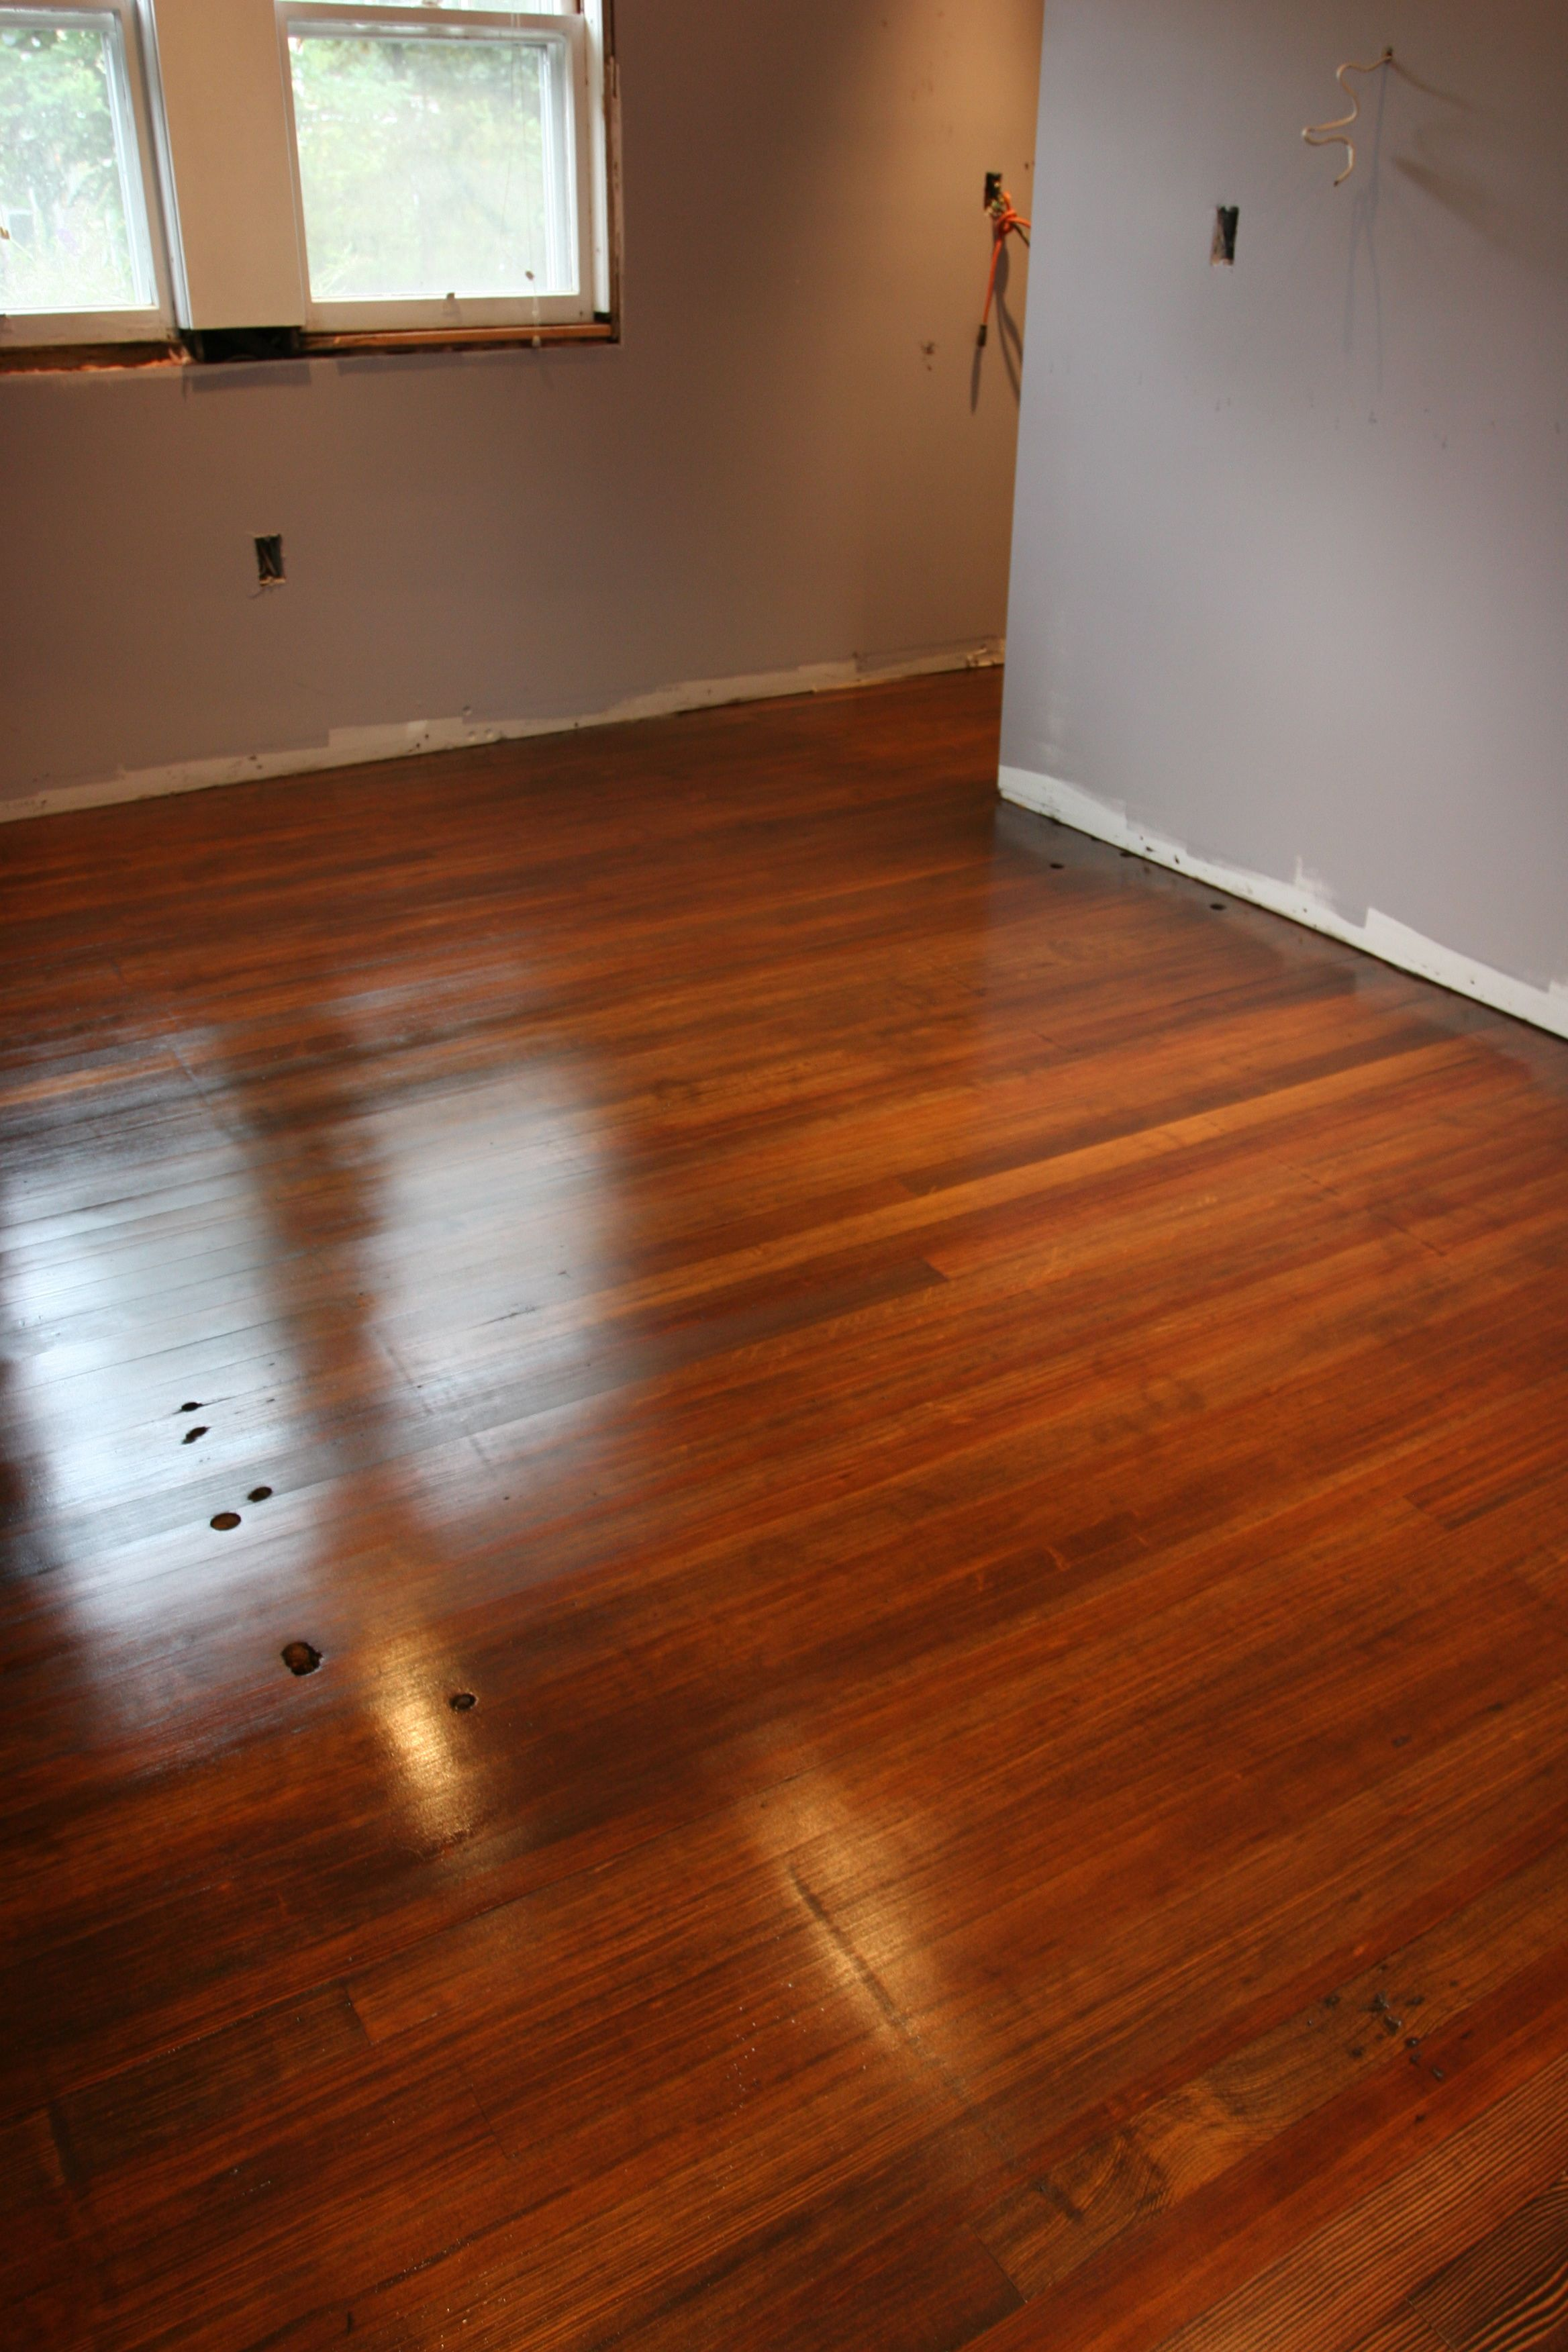 Gorgeous and glossy. The matte finish isn't as strong - it'll dull to a lovely well-worn floor over time naturally.